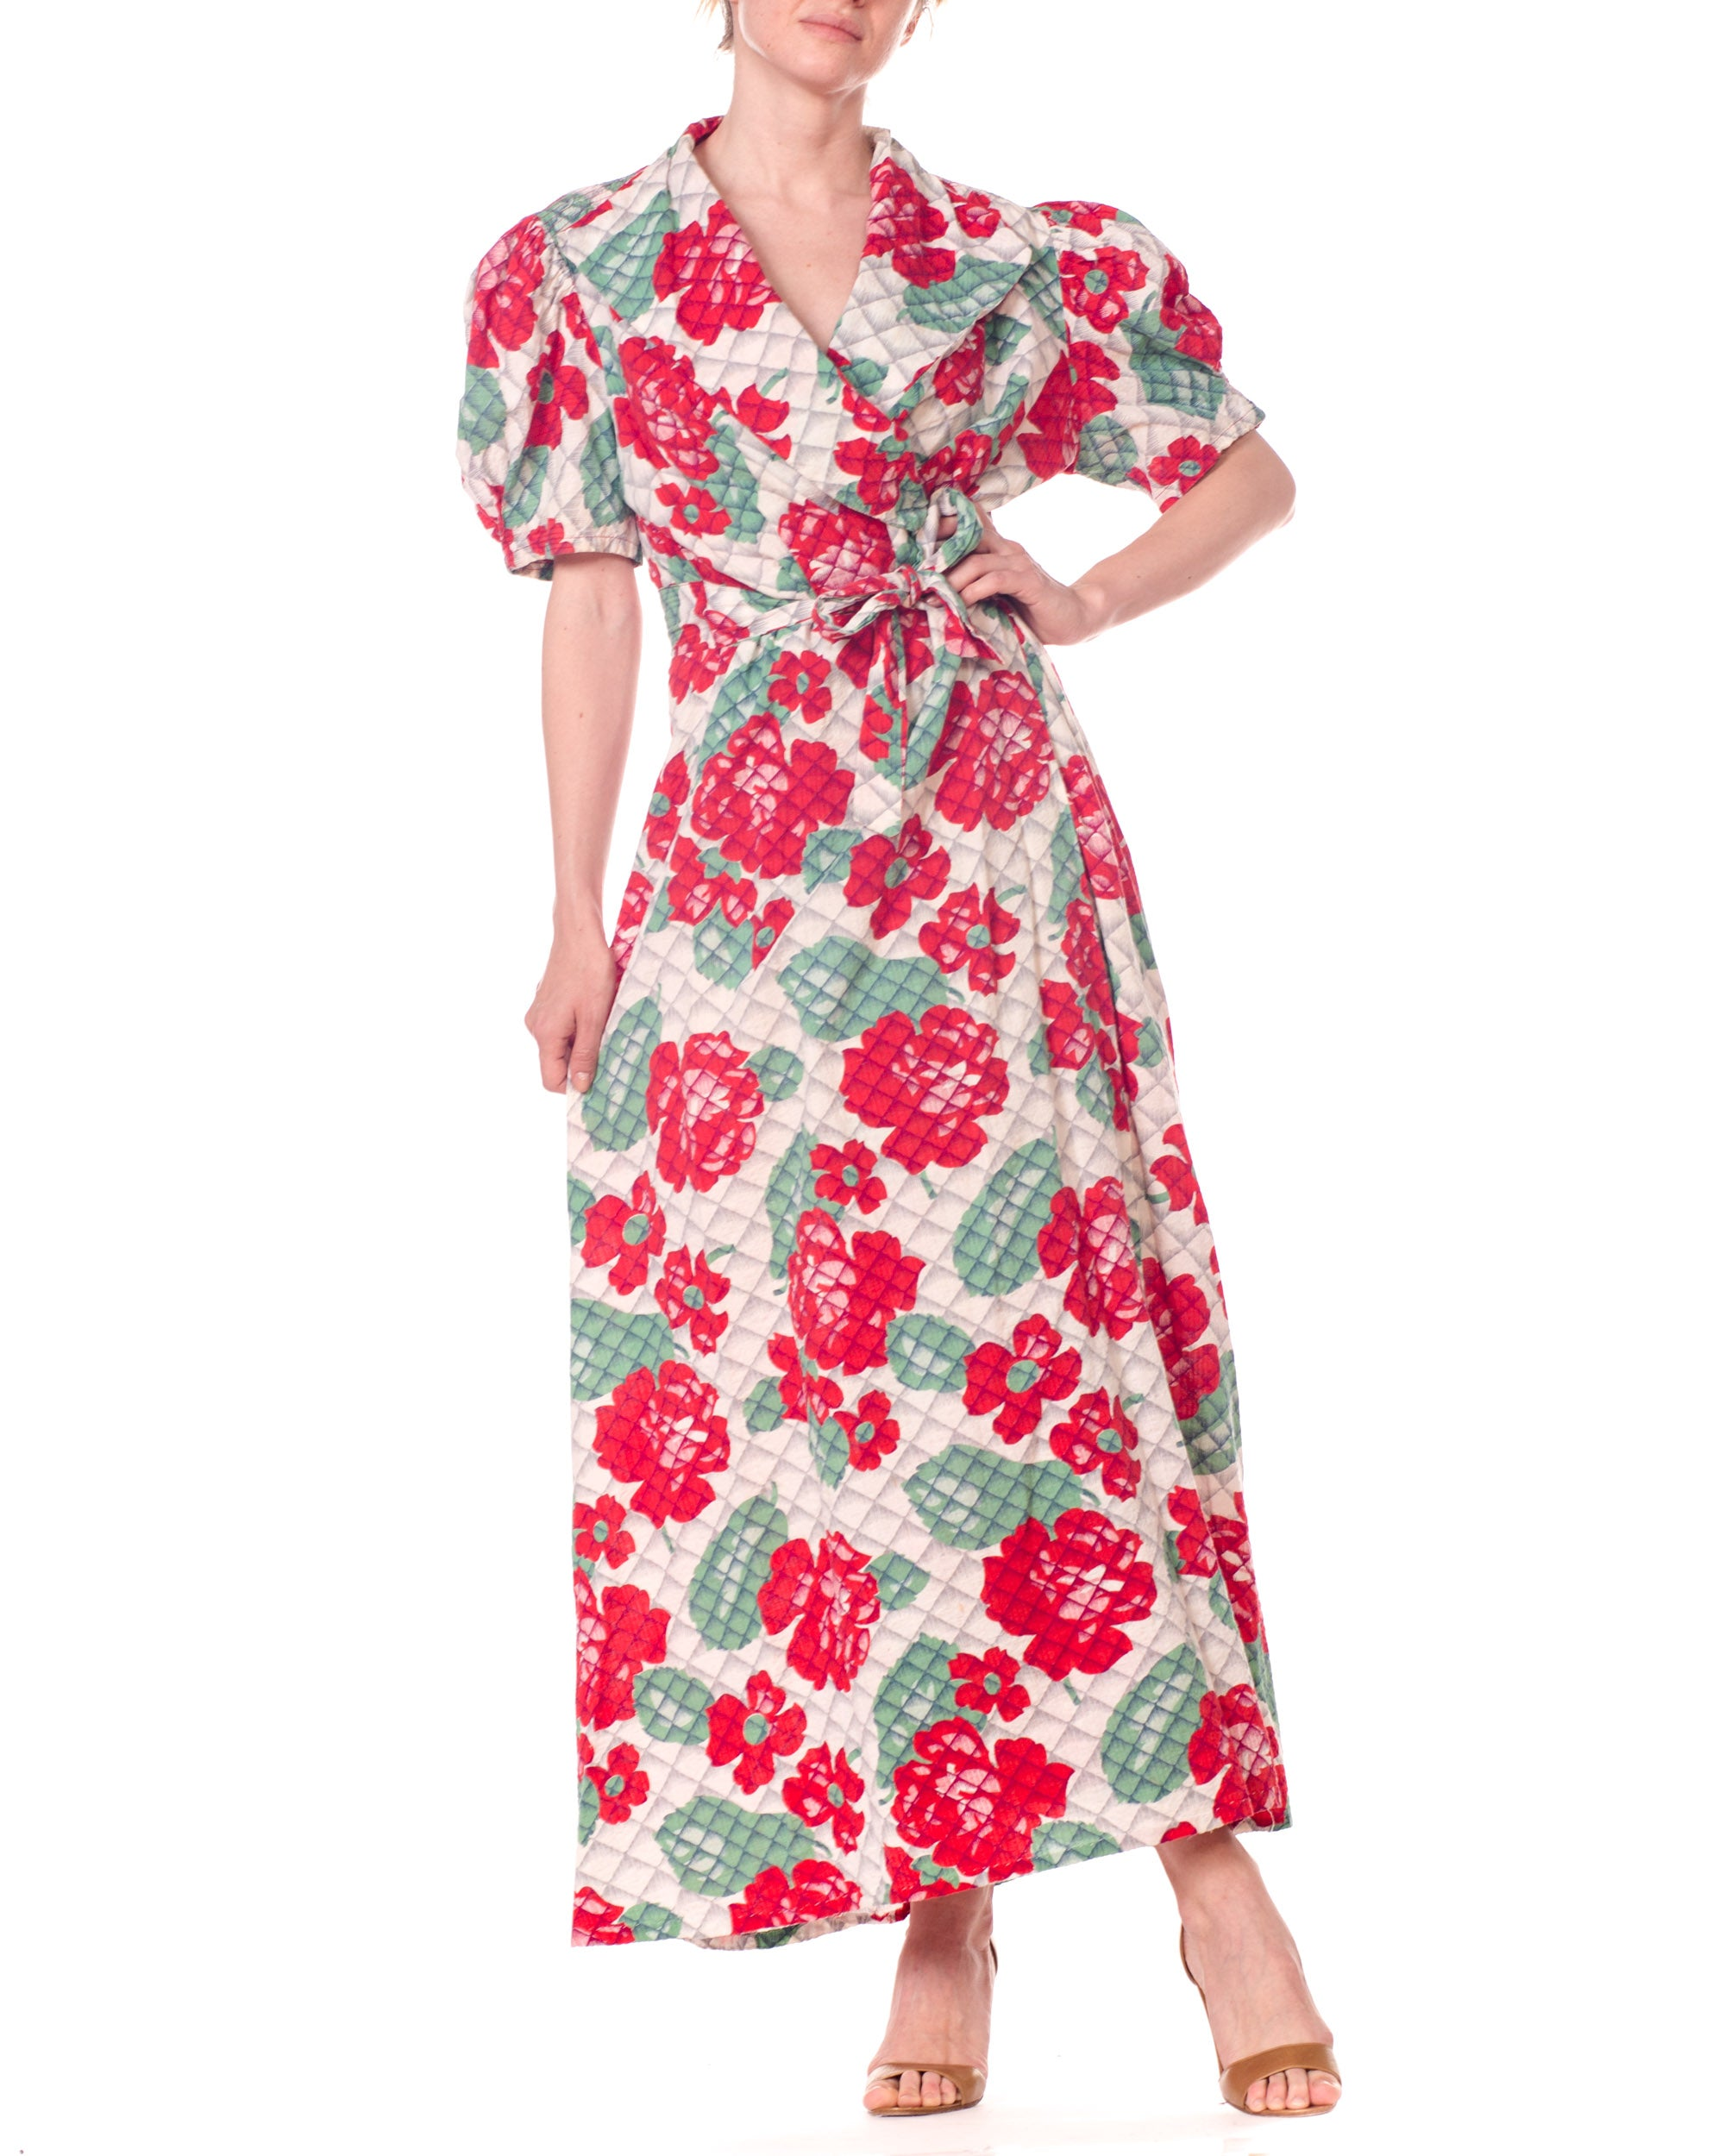 1940S Red & Green Cotton Floral Print Wrap Dress House Robe